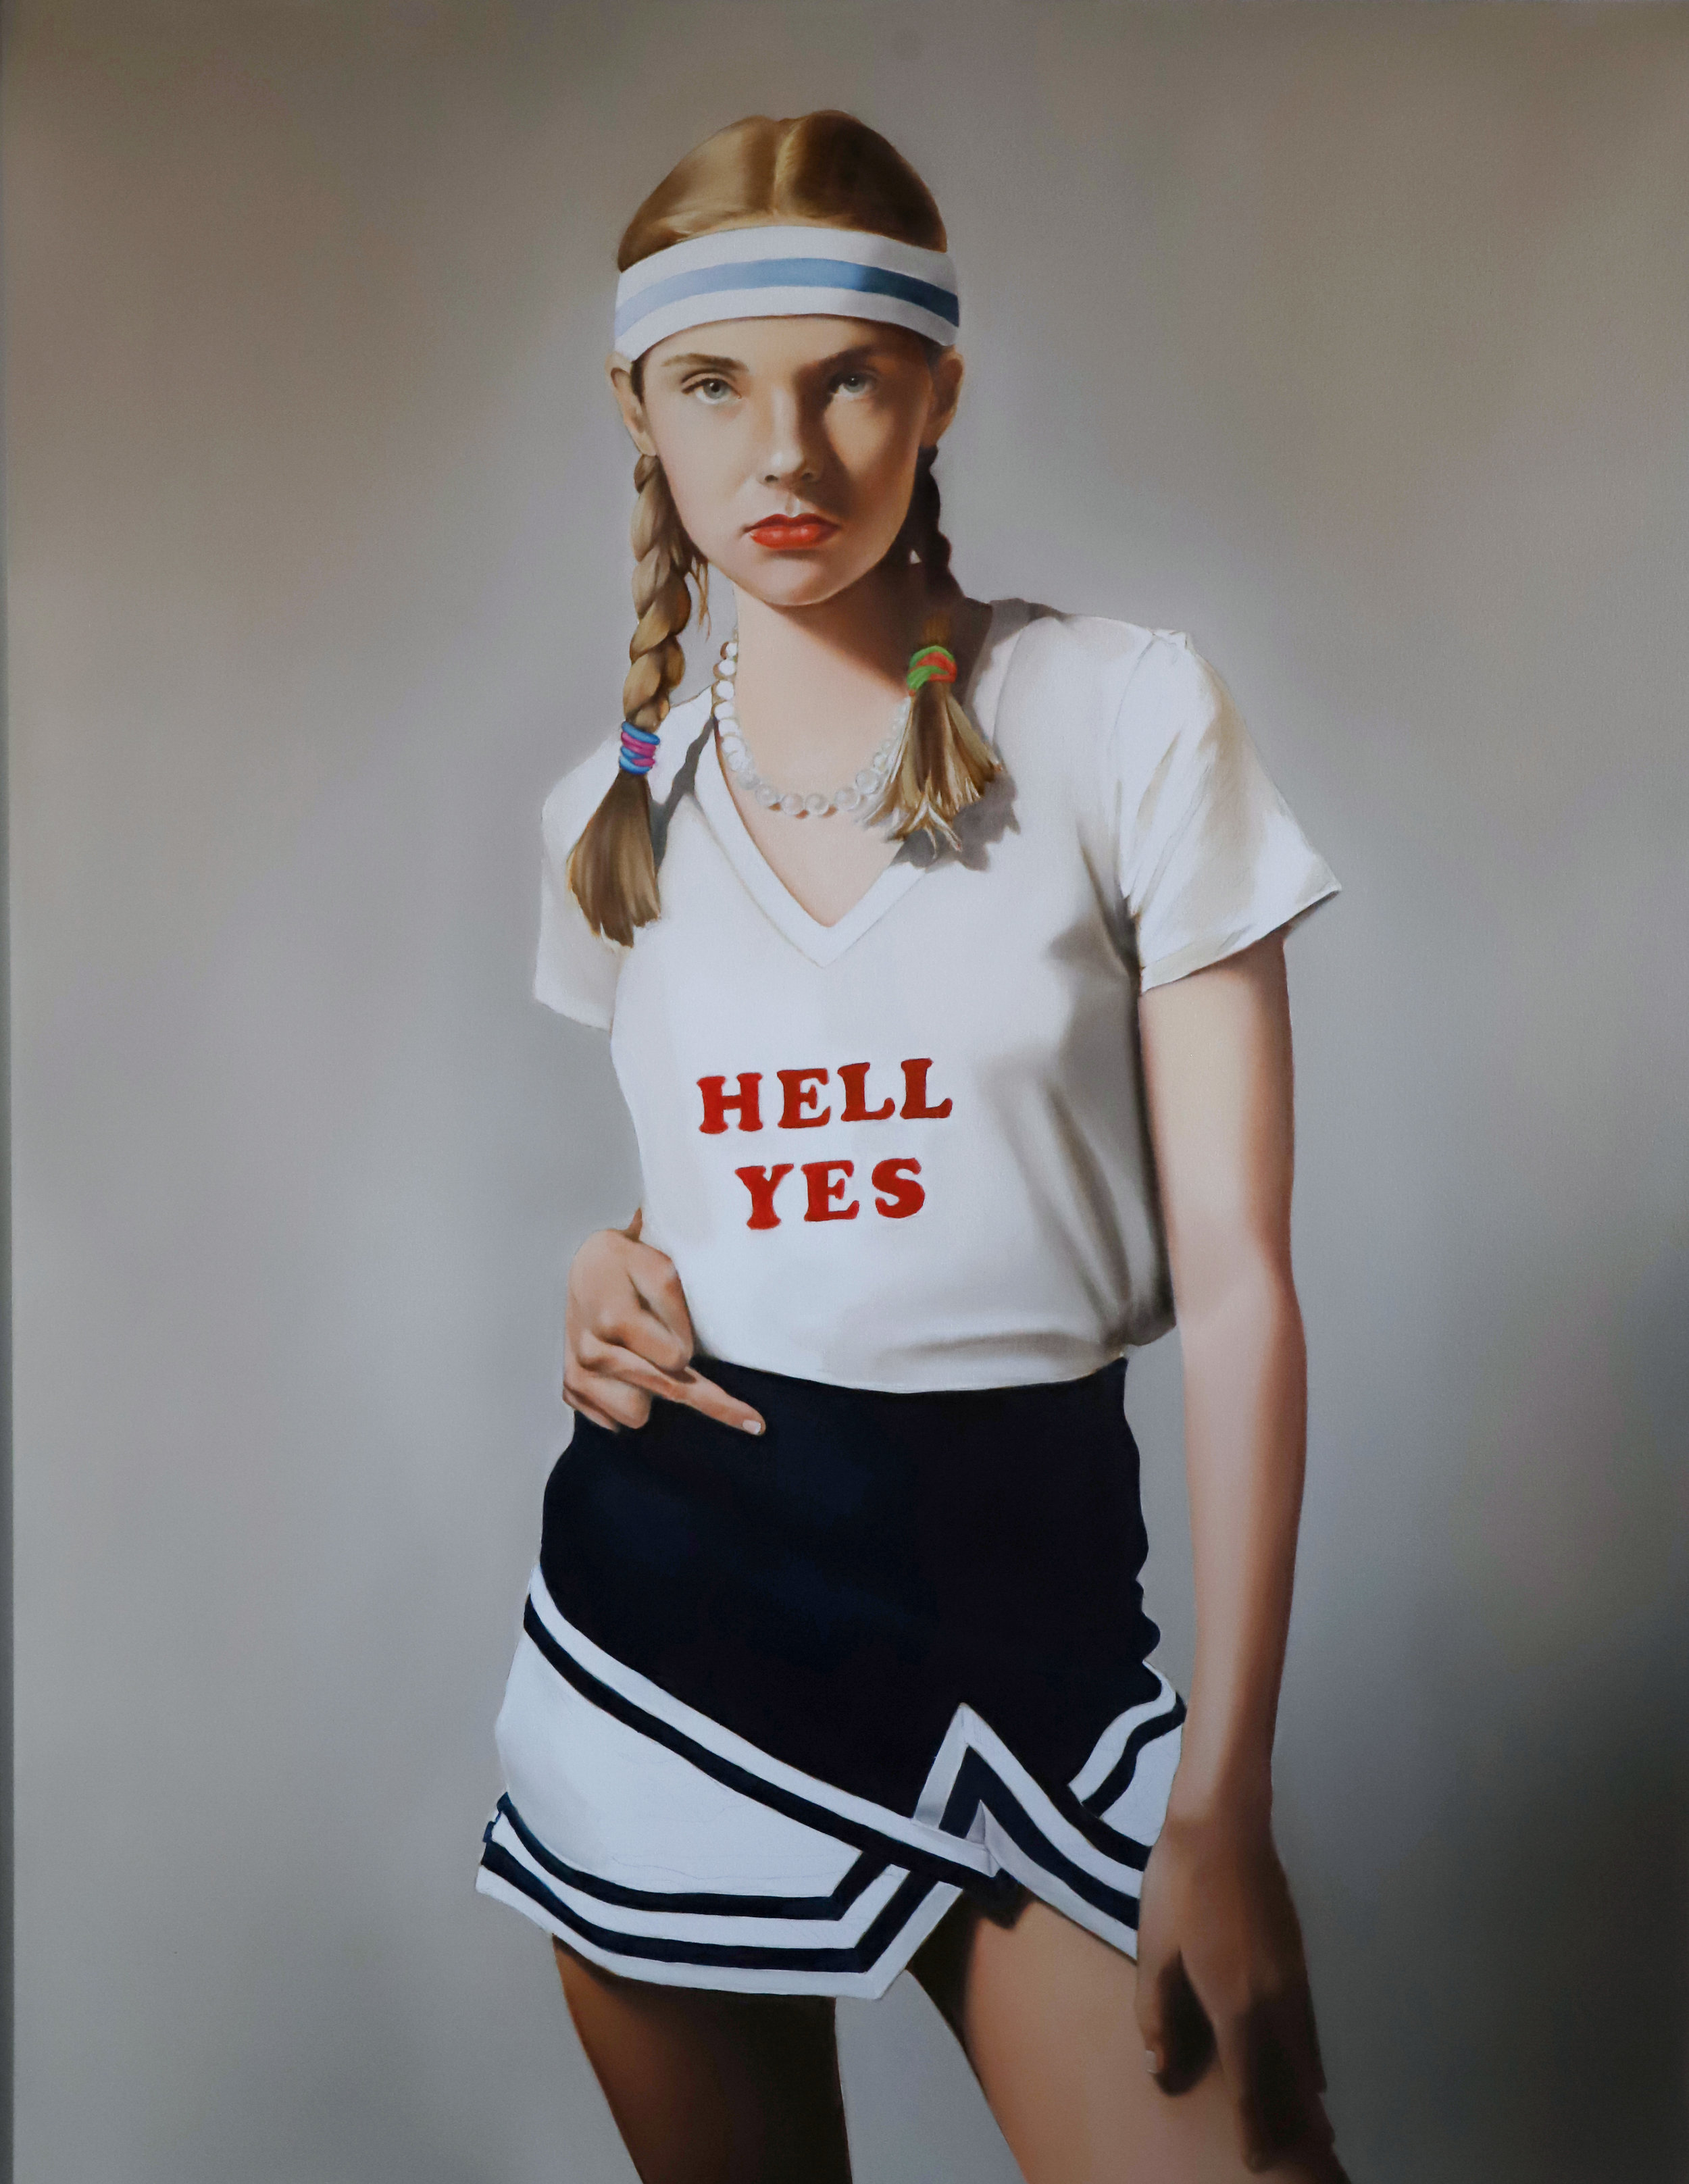 """Tara Lewis   HELL YES, 2019    Oil on Canvas   48""""Wx60""""H"""